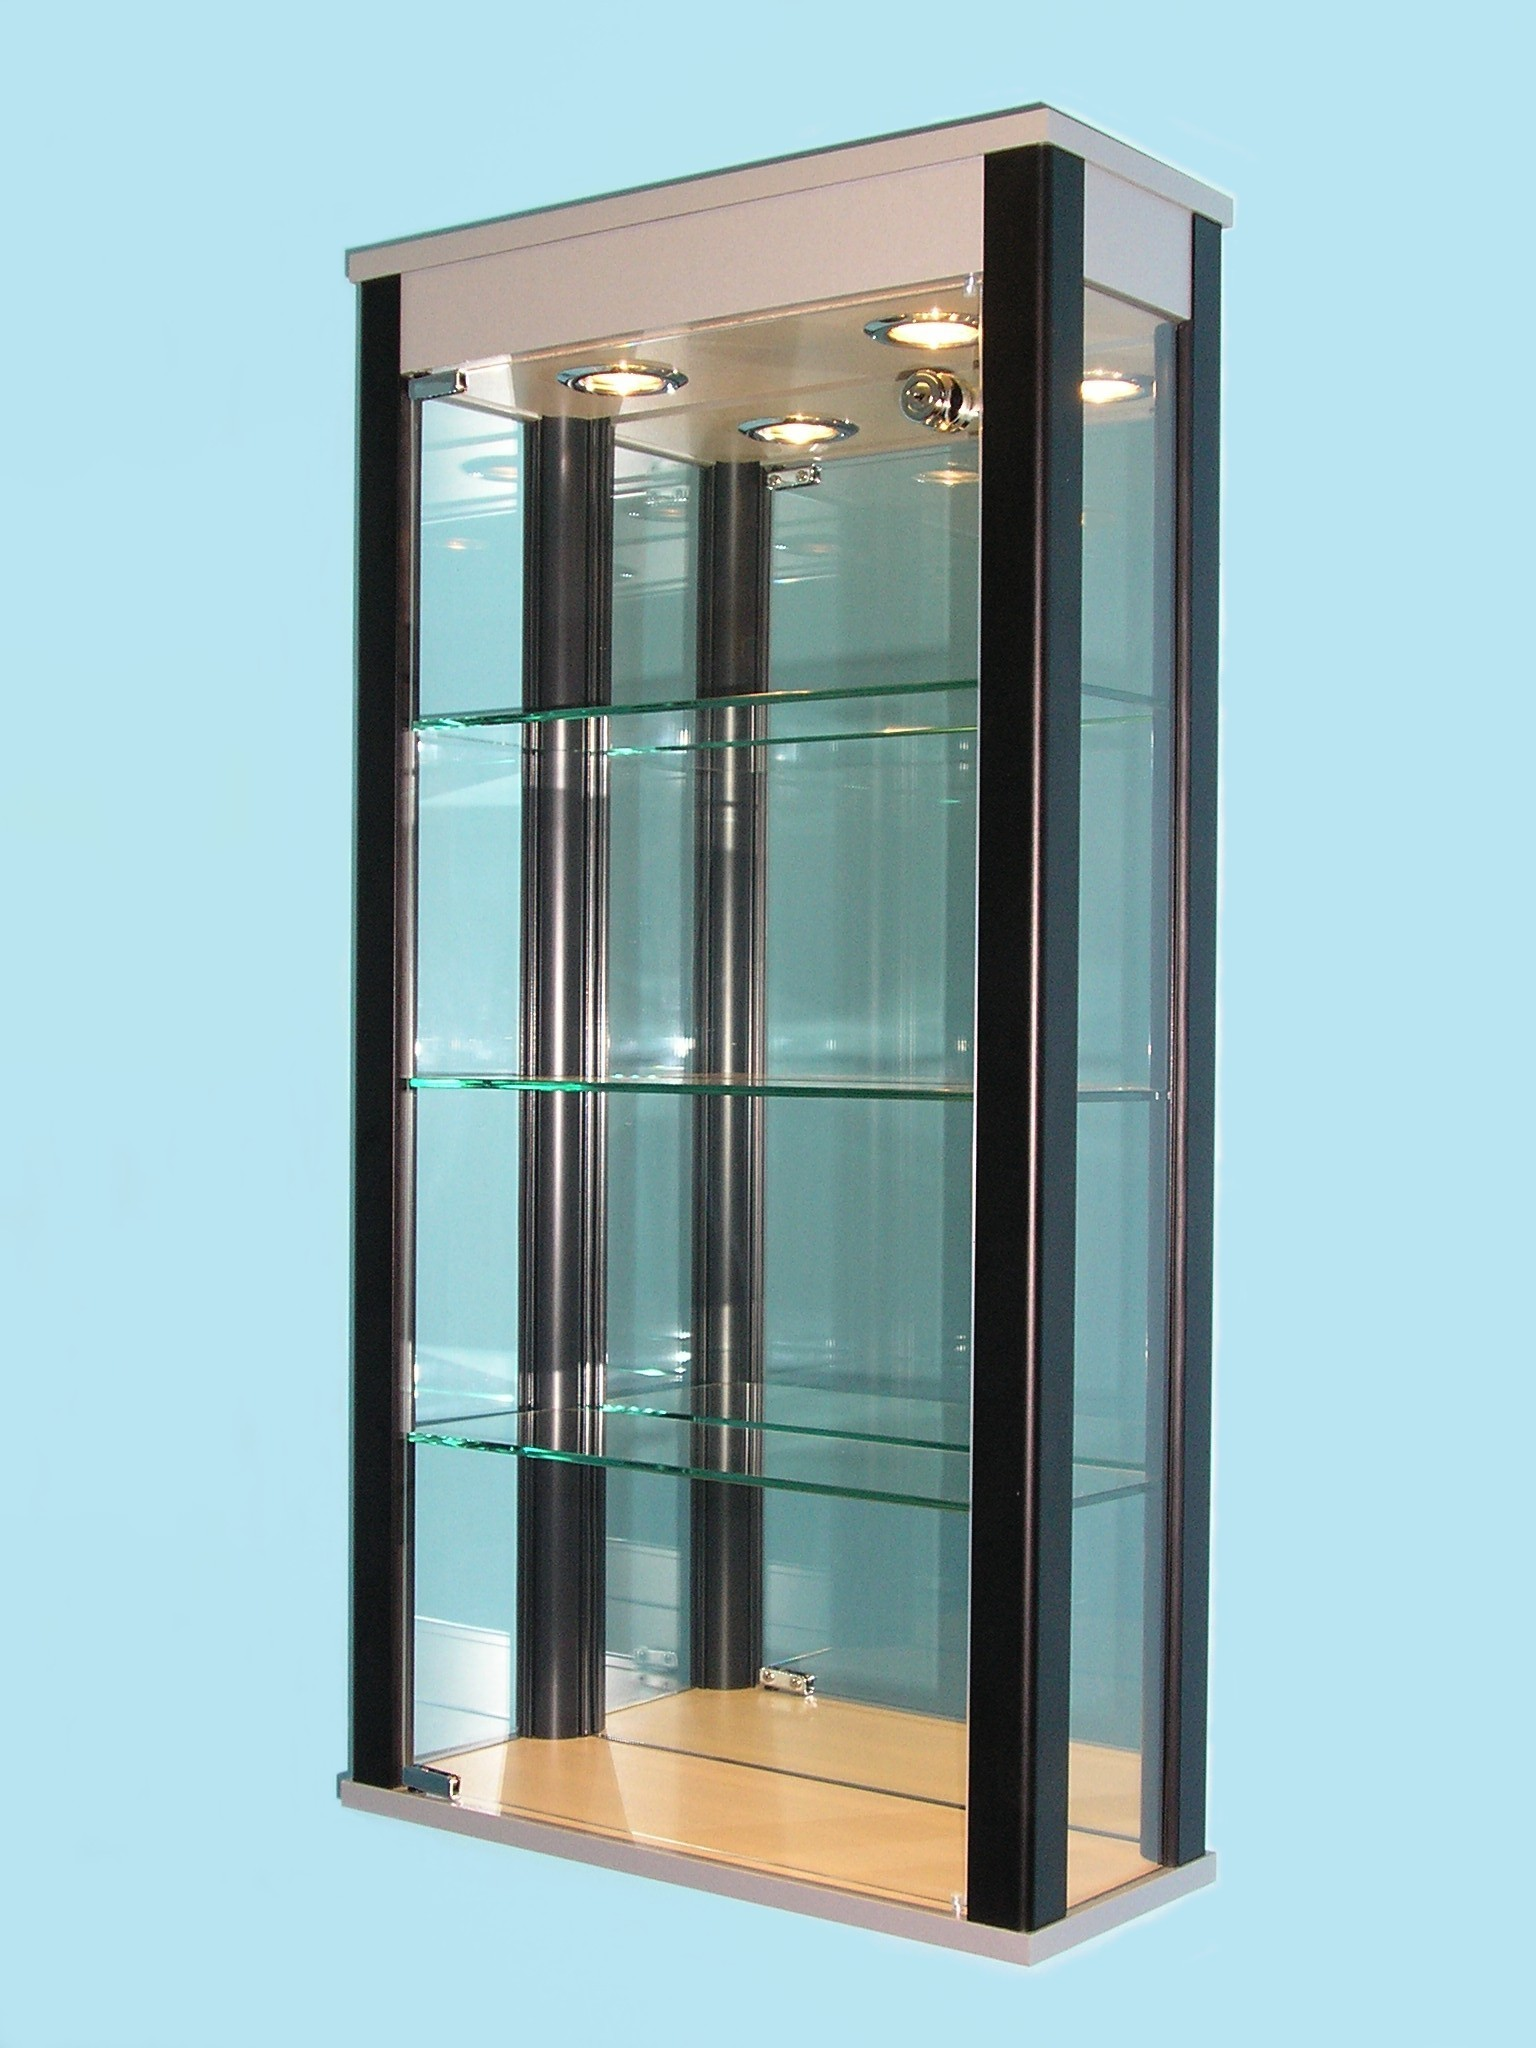 Designex Cabinets D33 aluminium glass display cabinets